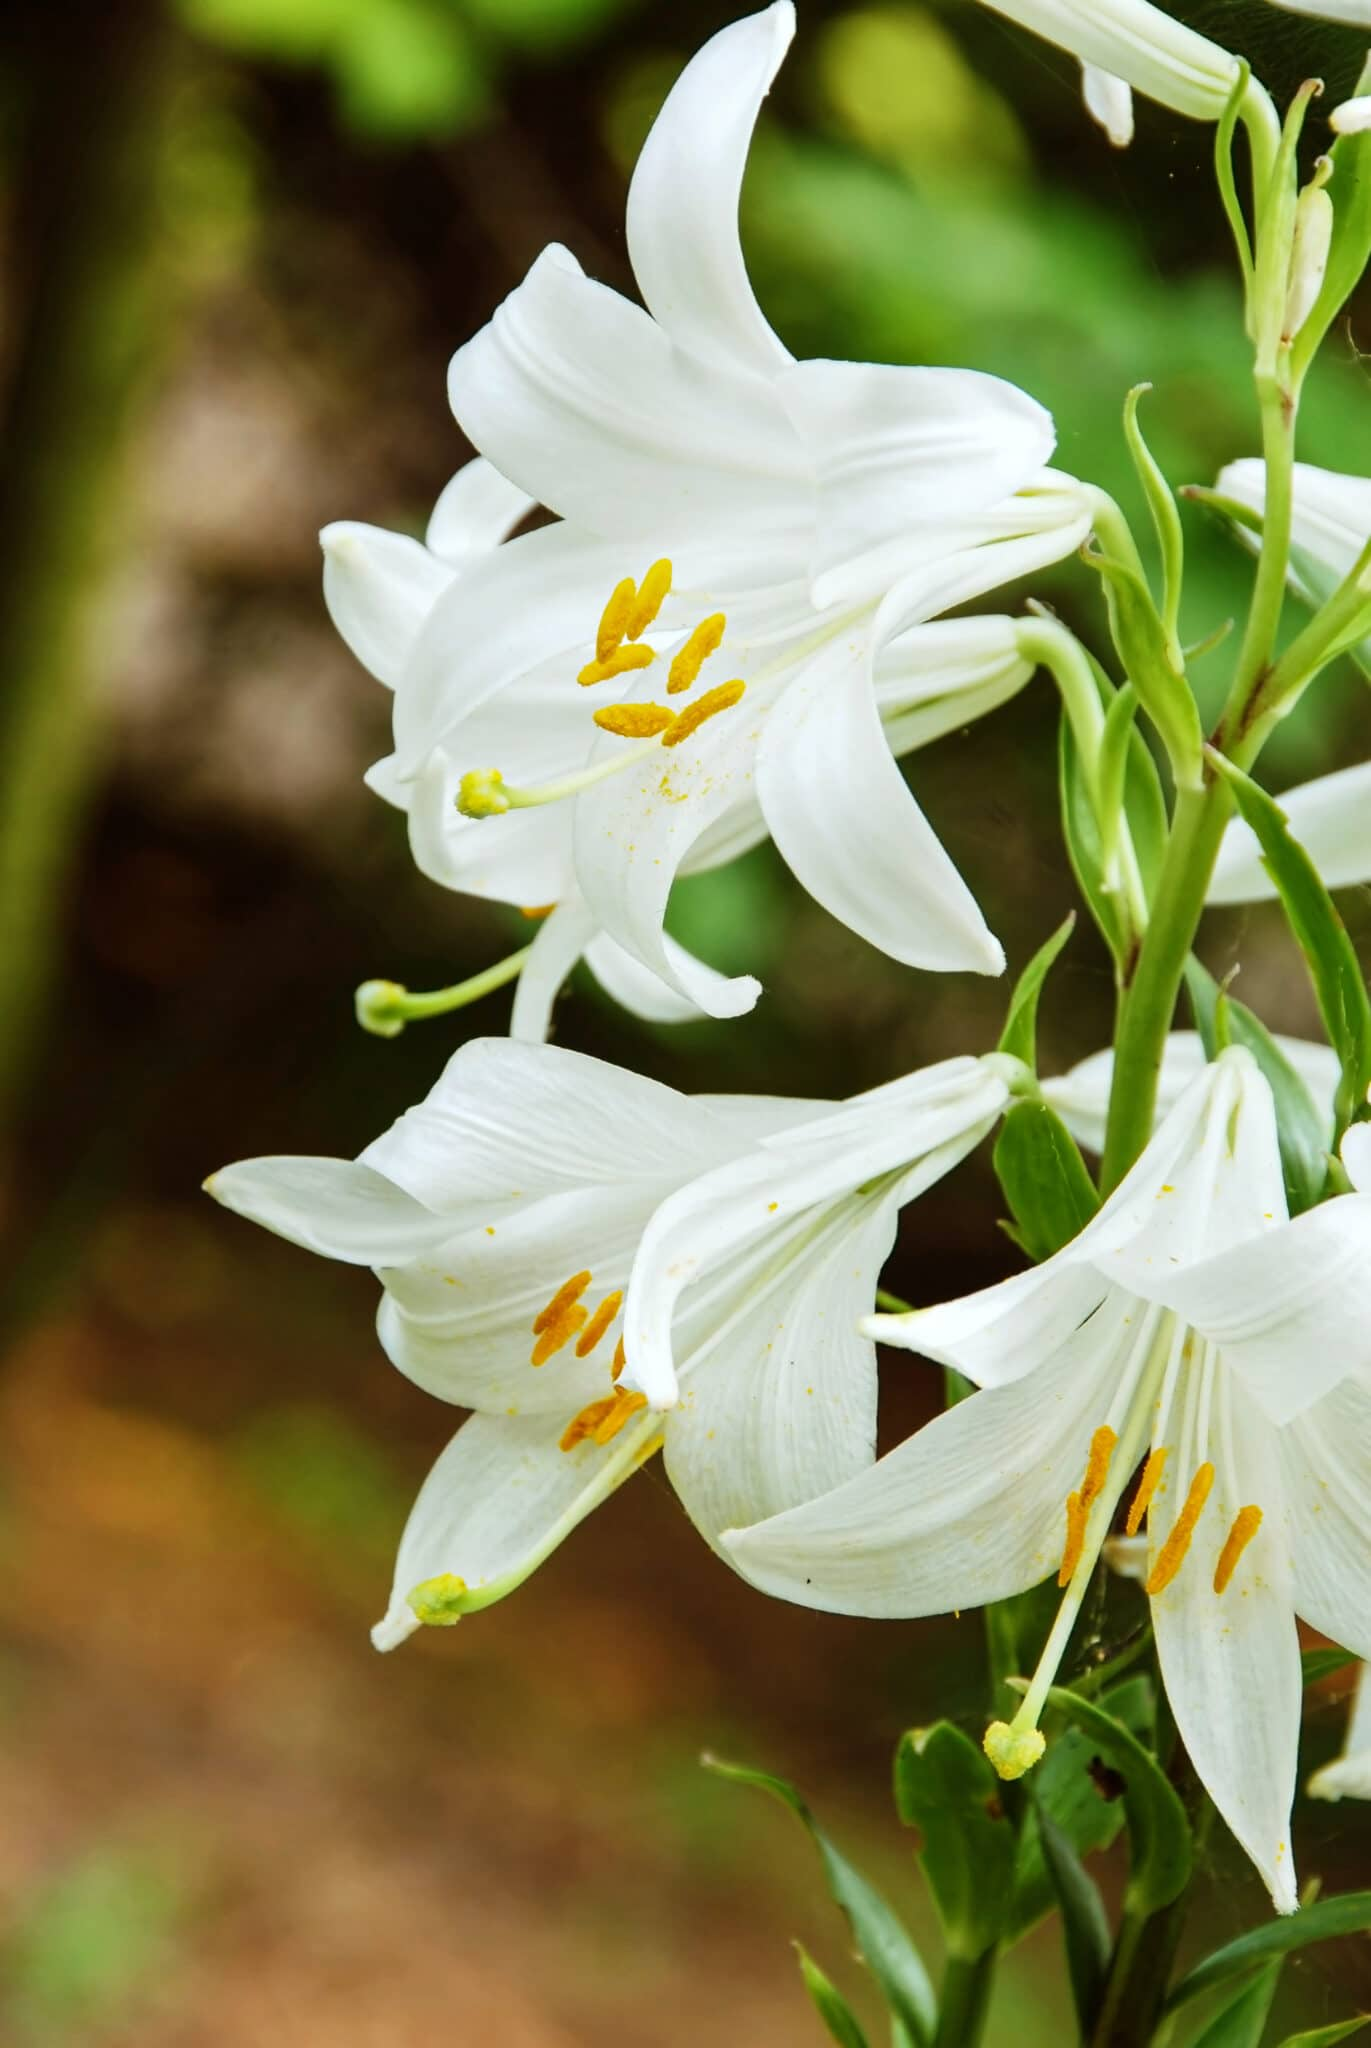 Brilliantly white madonna lily in full bloom.